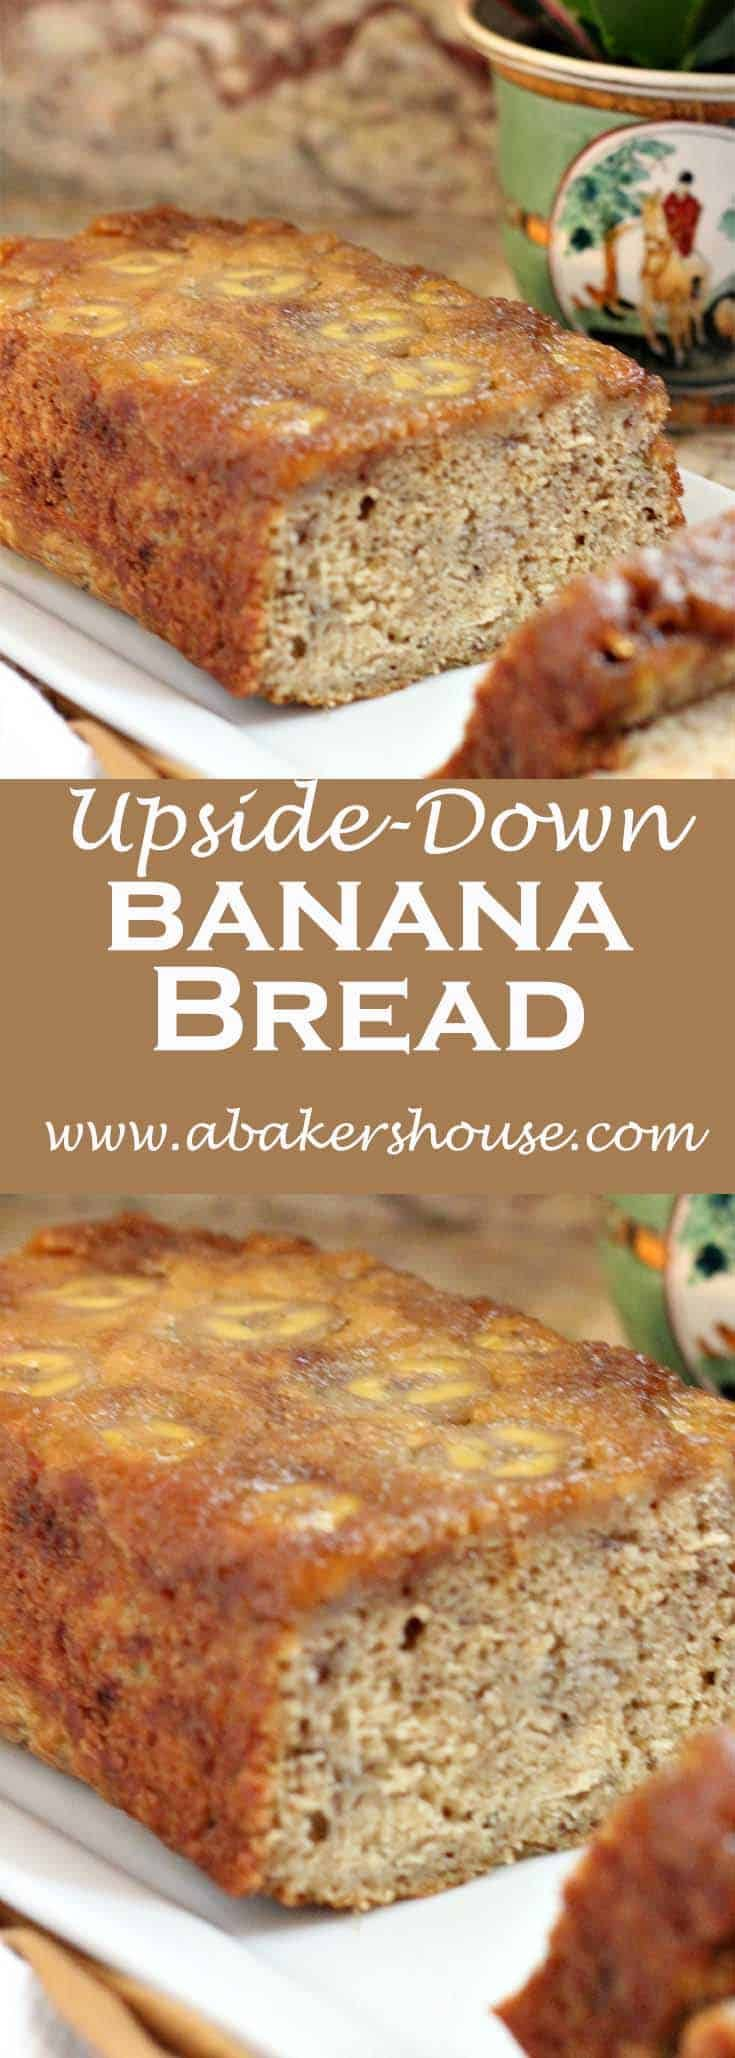 You May Have Heard Of Upside Down Pineapple Cake But Have You Tried The Same Technique Upside Down Banana Bread Recipe Banana Recipes Easy Banana Bread Recipe